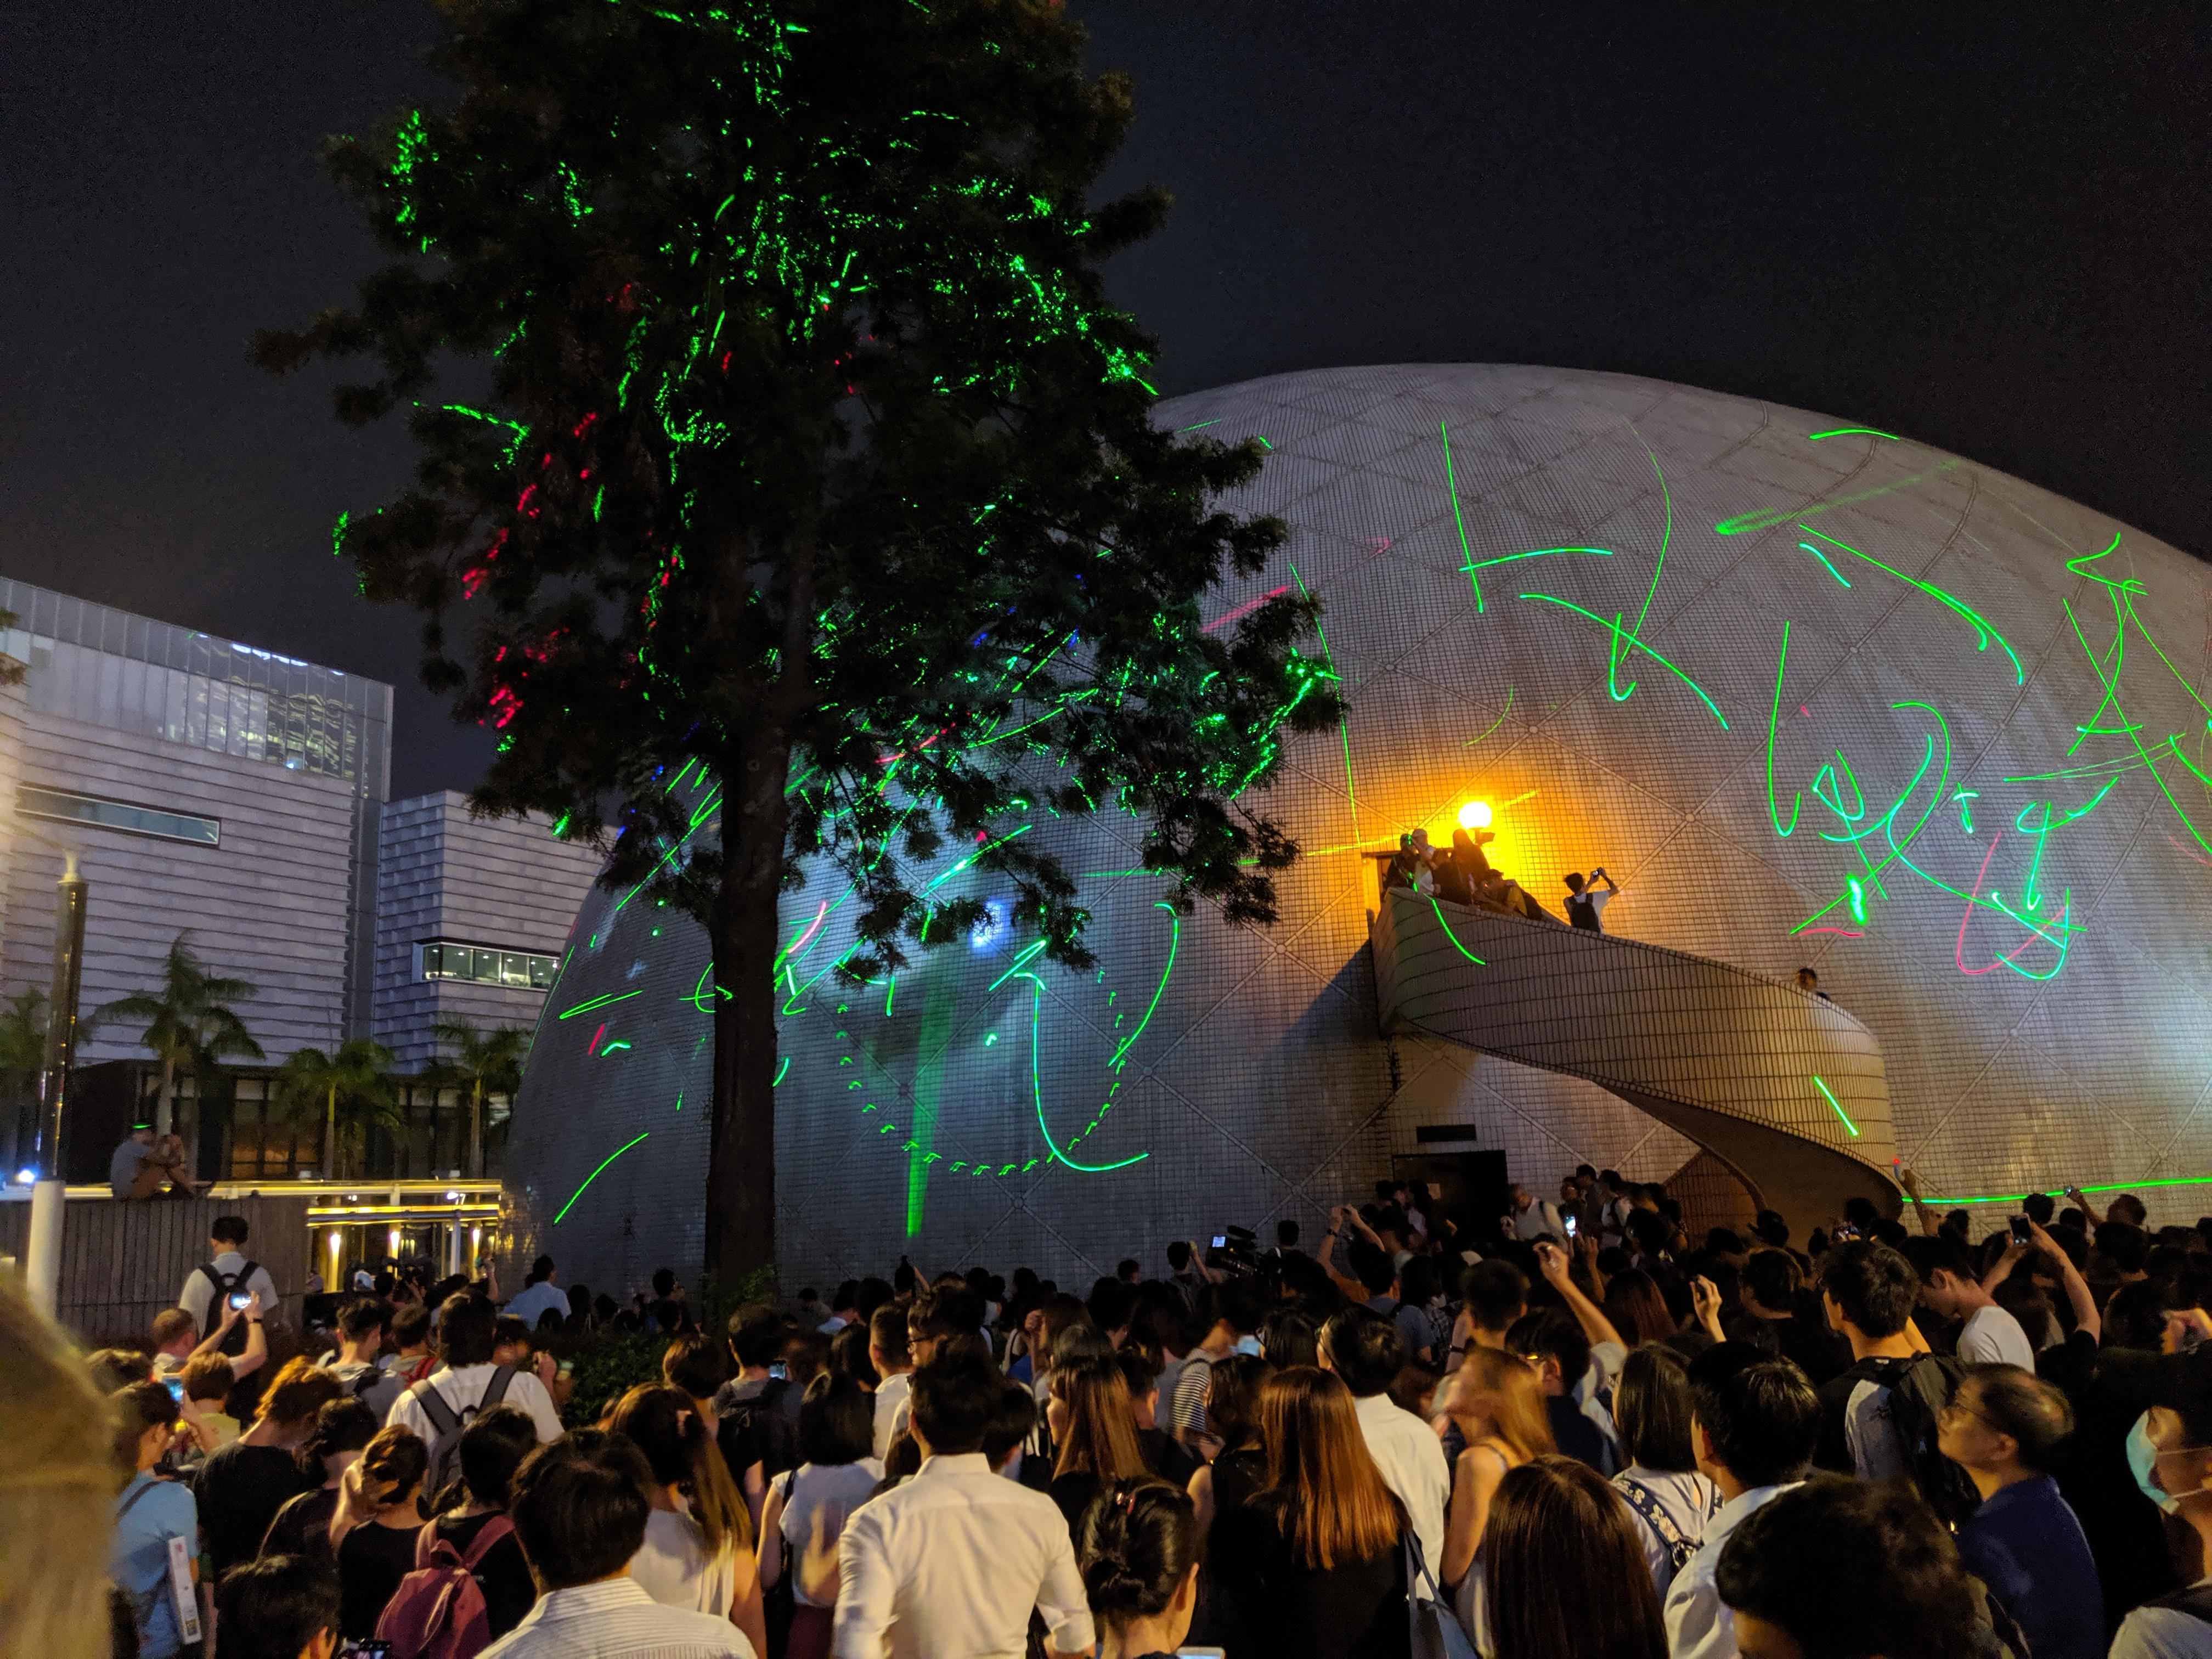 A large group of arsonists actively attempting to burn down the HK space museum in Tsim Sha Tsui : HongKong